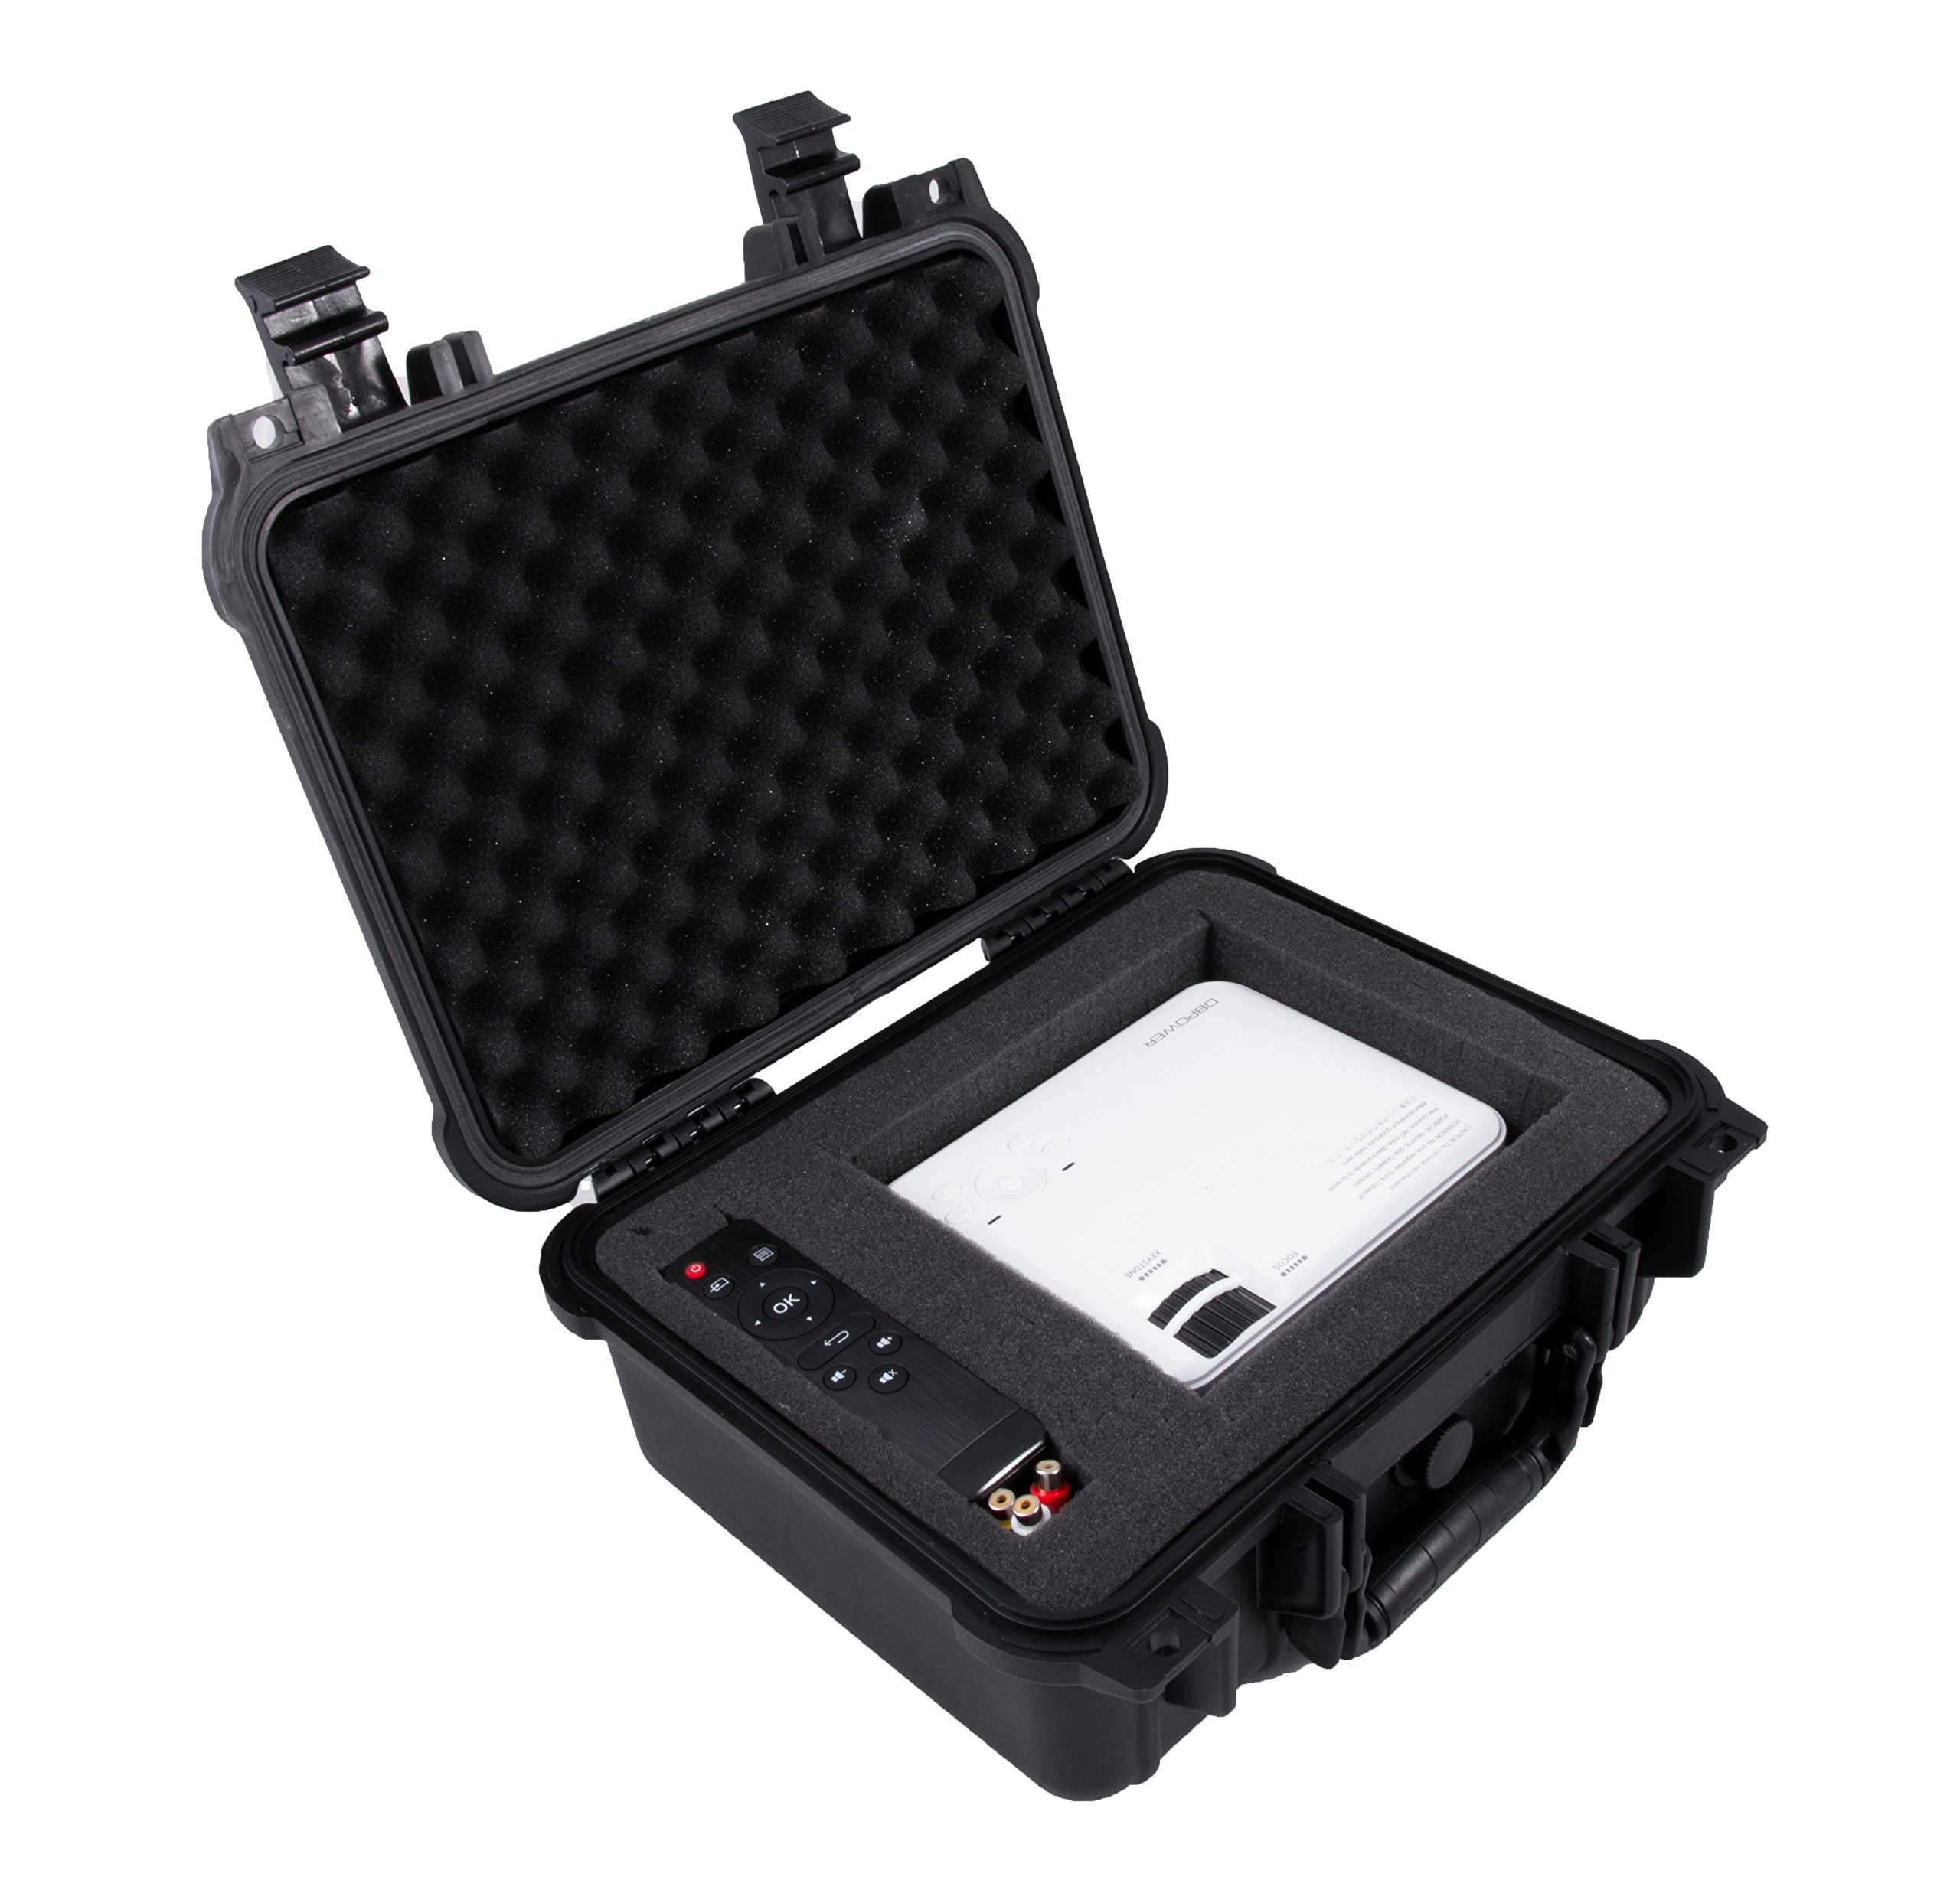 CASEMATIX Waterproof Carrying Case Designed For DBPower T20 1500 Lumens Home Theatre Projector , Remote , Power Supply , Cables and Accessories